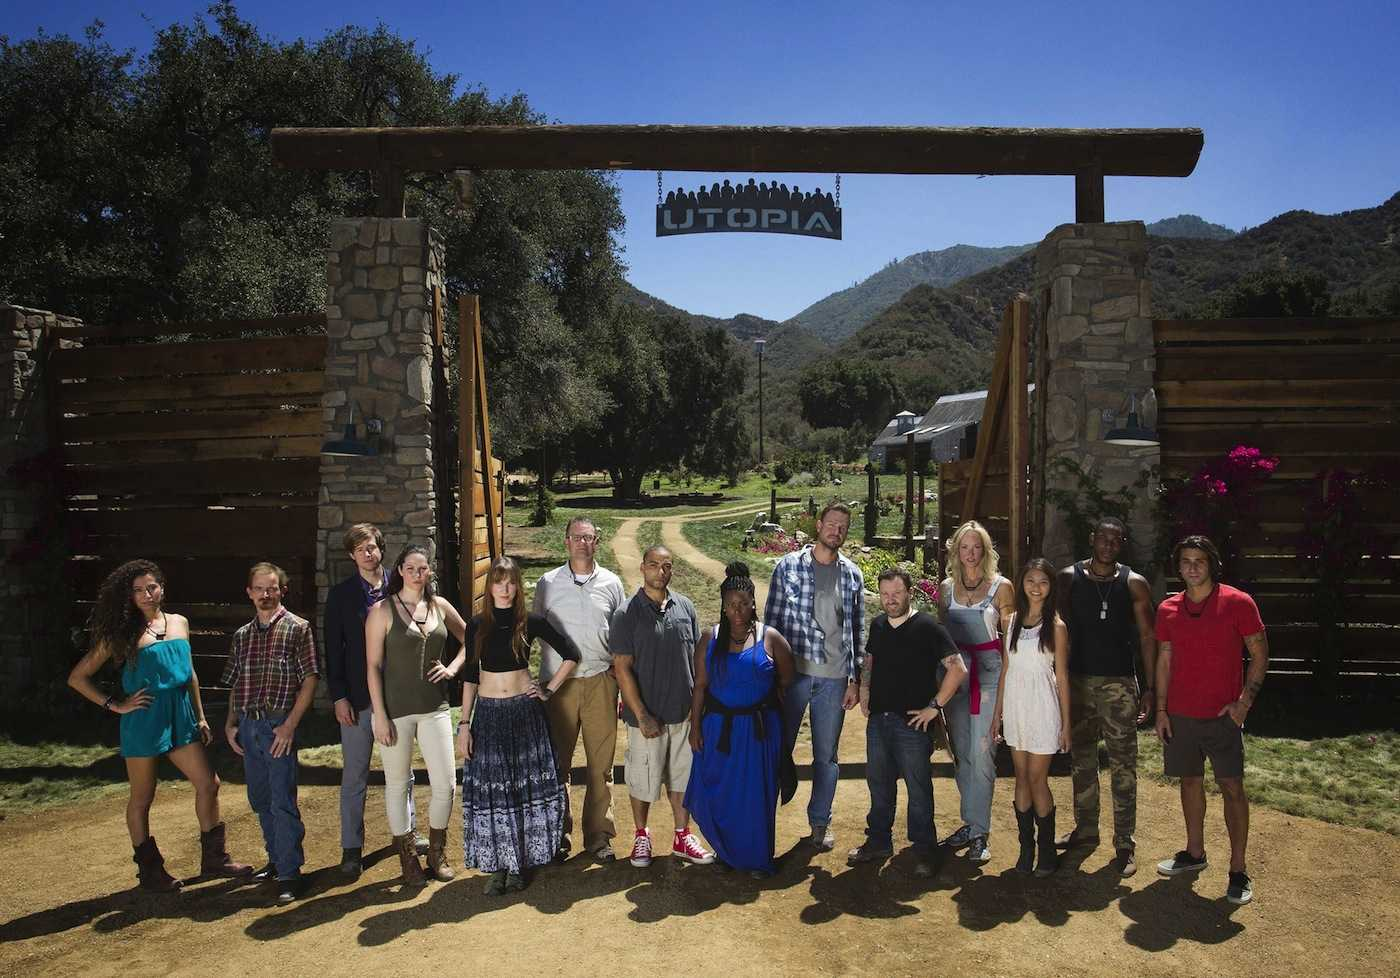 The pioneers, from left: Nikki Noce, Red Vanwinkle, Mike Quinn, Hex Vanisles, Dedeker Winston, Jonathan Lovelace, Dave Green, Amanda Scott, Josh Johnston, Rob Hospidor, Bella Chartrand, Bri Nyugen, Aaron Thomas, and Chris Tuorto enter UTOPIA and begin the birth of a brave new world. UTOPIA premiers on a special night, Sunday, Sept. 7 ( 8:00-10:00 PM ET/PT) before continuing in its regular time period, Tuesday, Sept. 9 ( 8:00-9:00 PM ET/PT), with six special broadcasts on Fridays ( 8:00-9:00 PM ET/PT), beginning Sept. 12 on FOX.